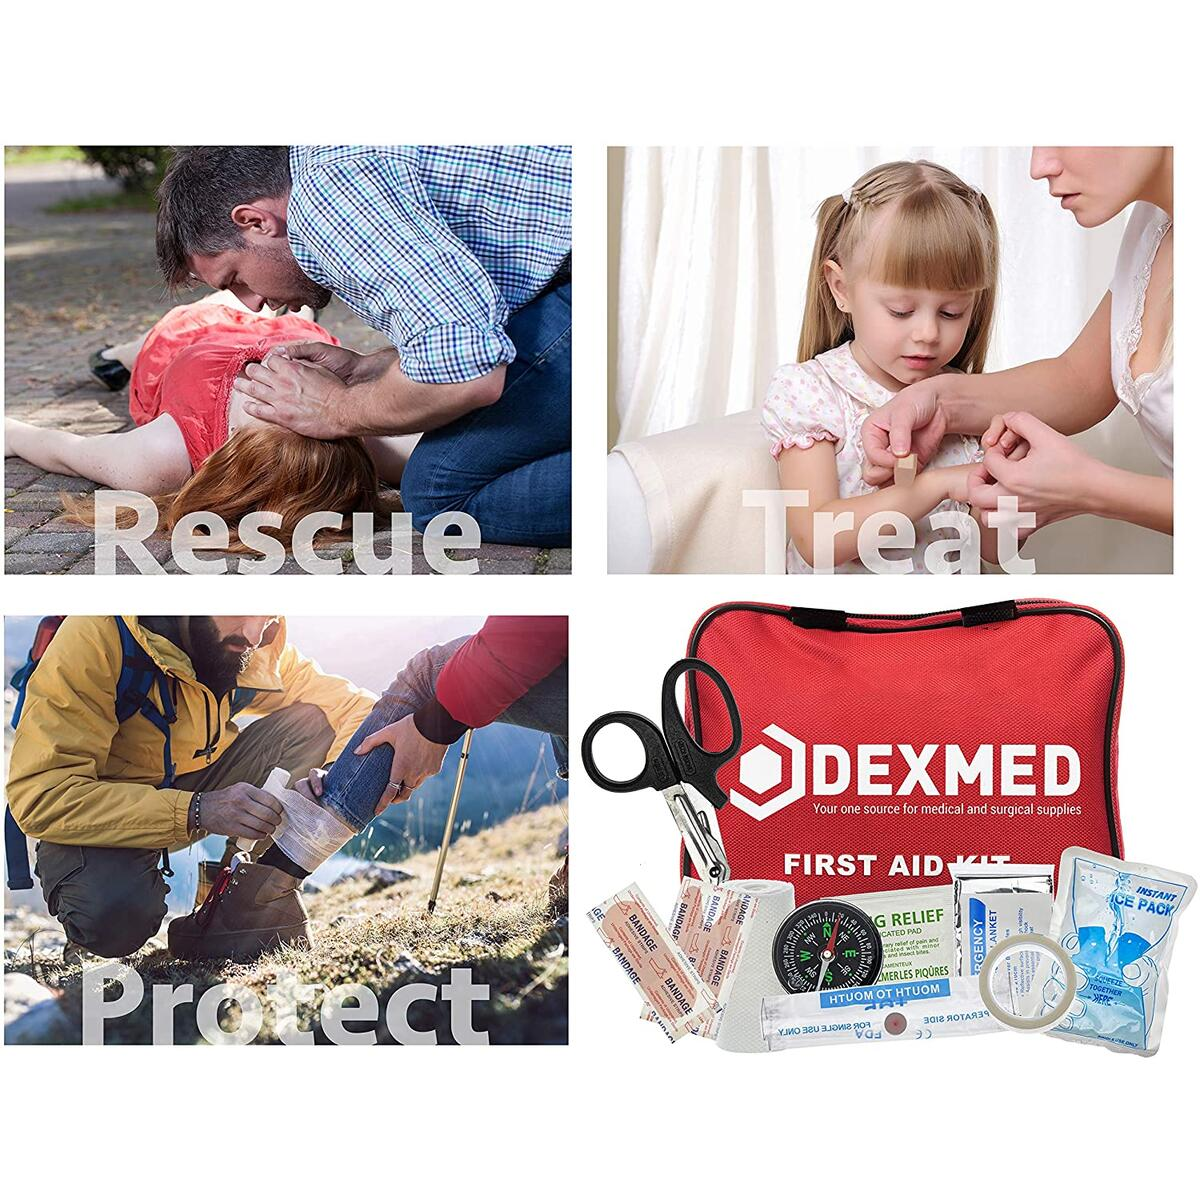 Dexmed All-Purpose Waterproof First Aid Medical Kit - 88 Pieces- Portable and Compact for Travel, Ideal for Home, Car, Workplace and Outdoor Emergencies